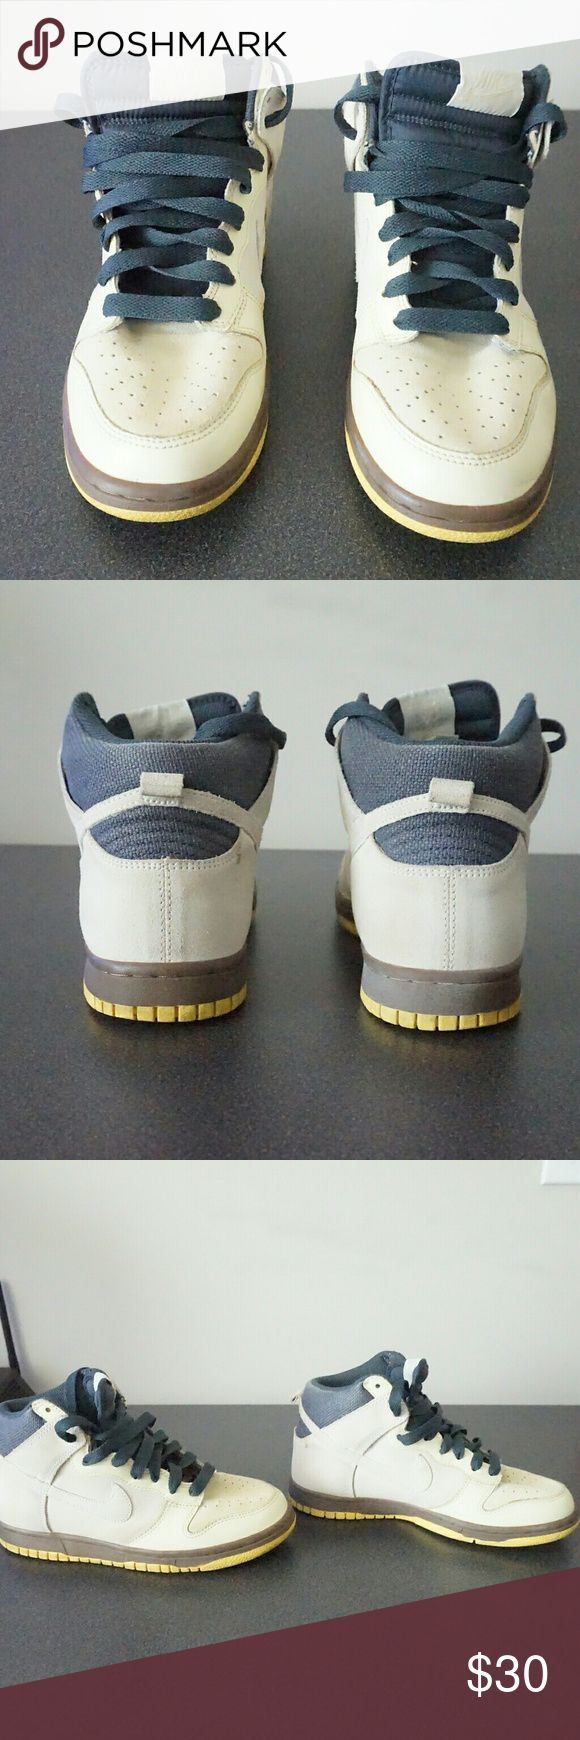 Nike dunks These have been worn but still in great condition.only needs to be cleaned and Left foot food has a bit of creasing. nike Shoes Sneakers